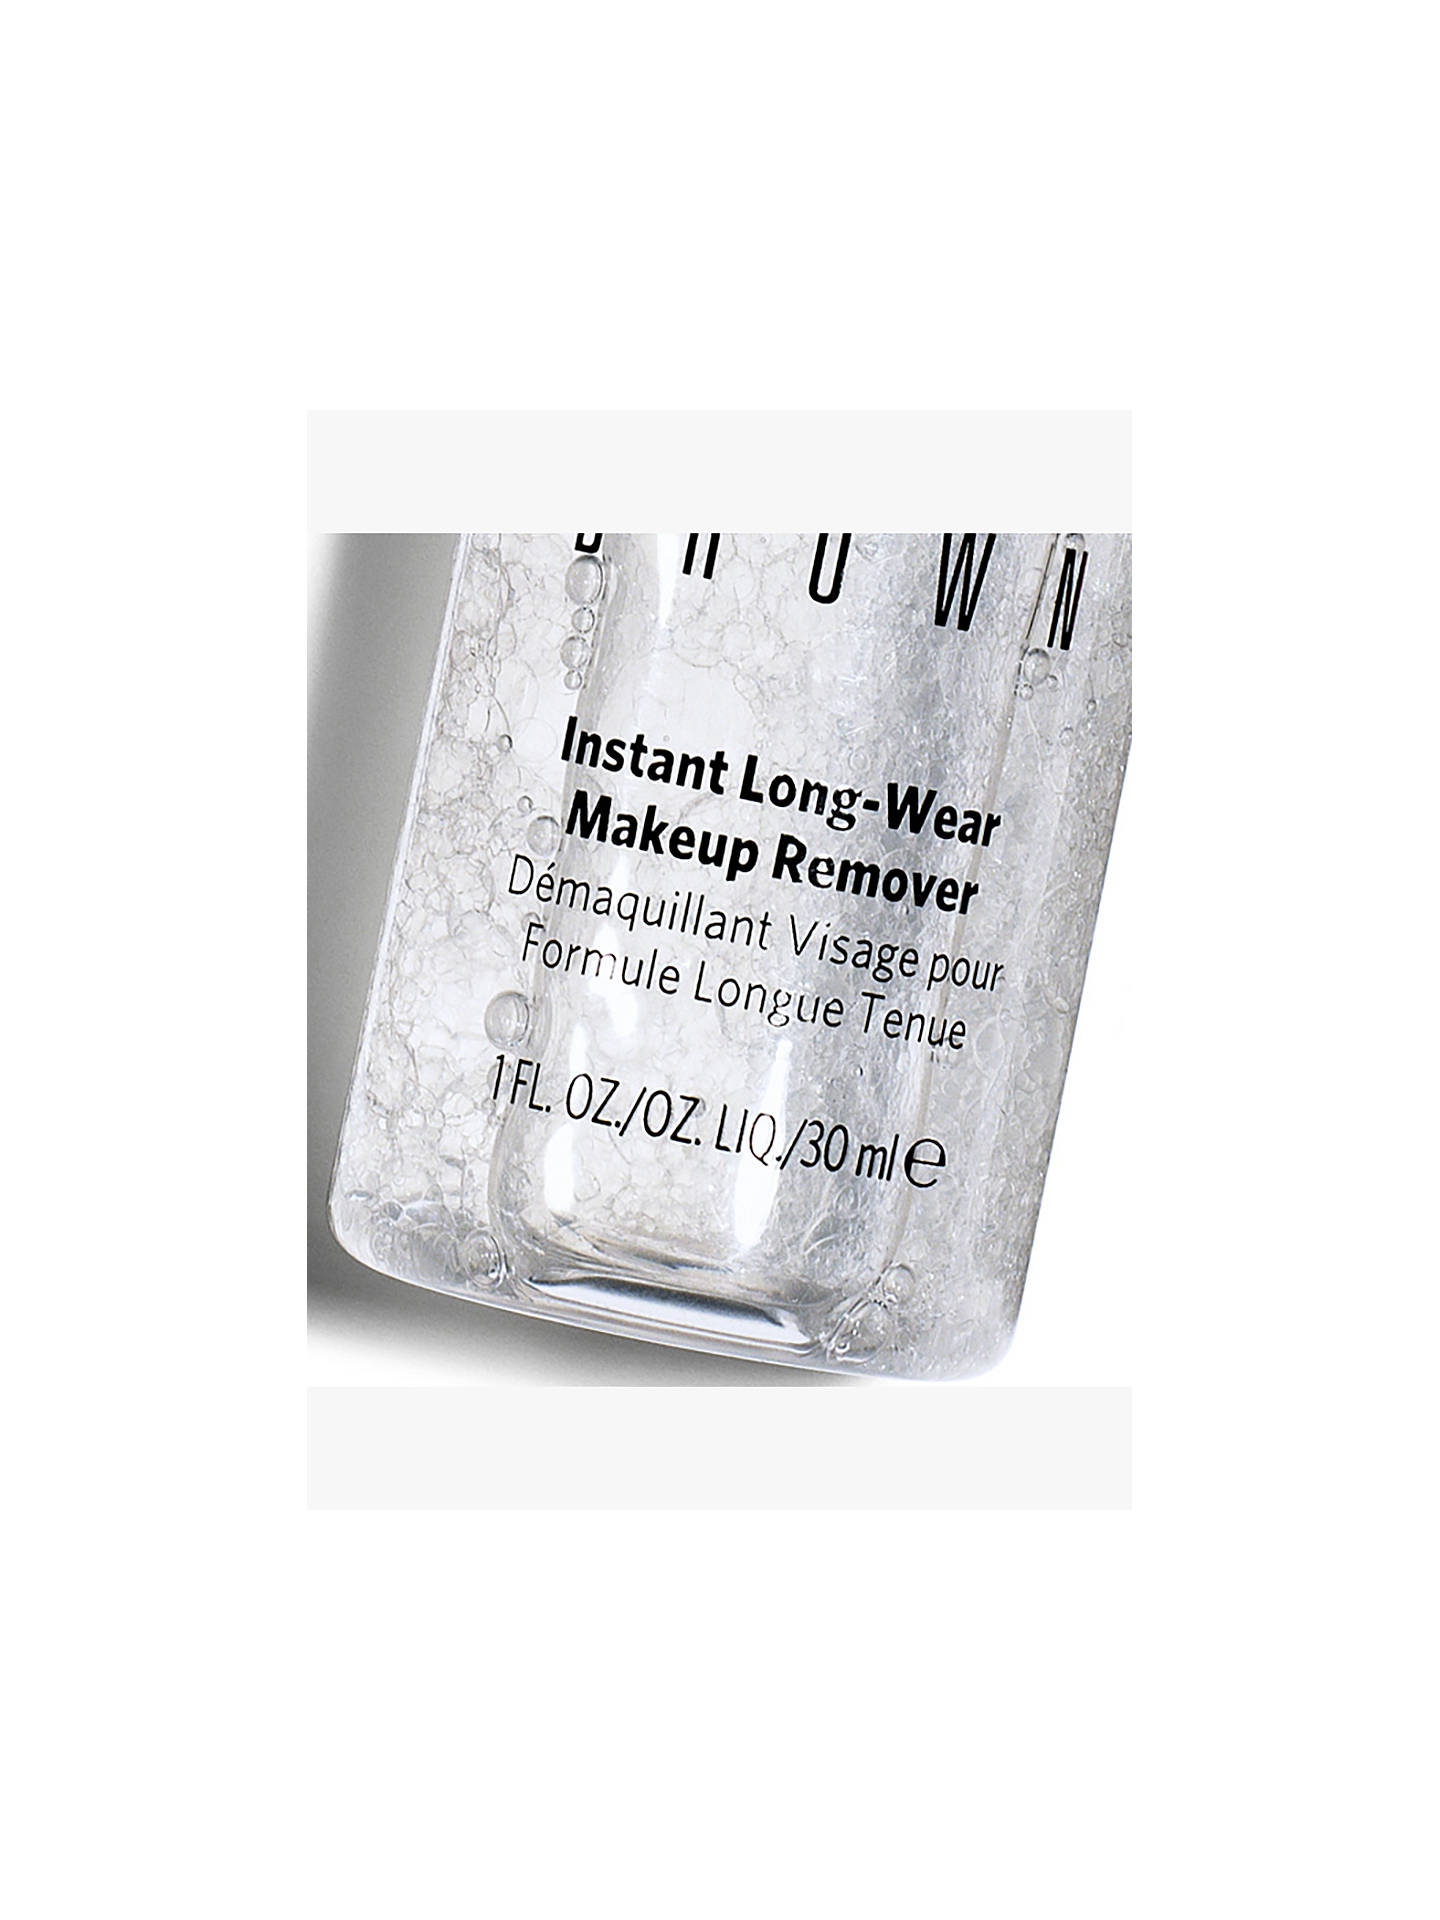 BuyBobbi Brown Instant Long-Wear Makeup Remover, 30ml Online at johnlewis.com